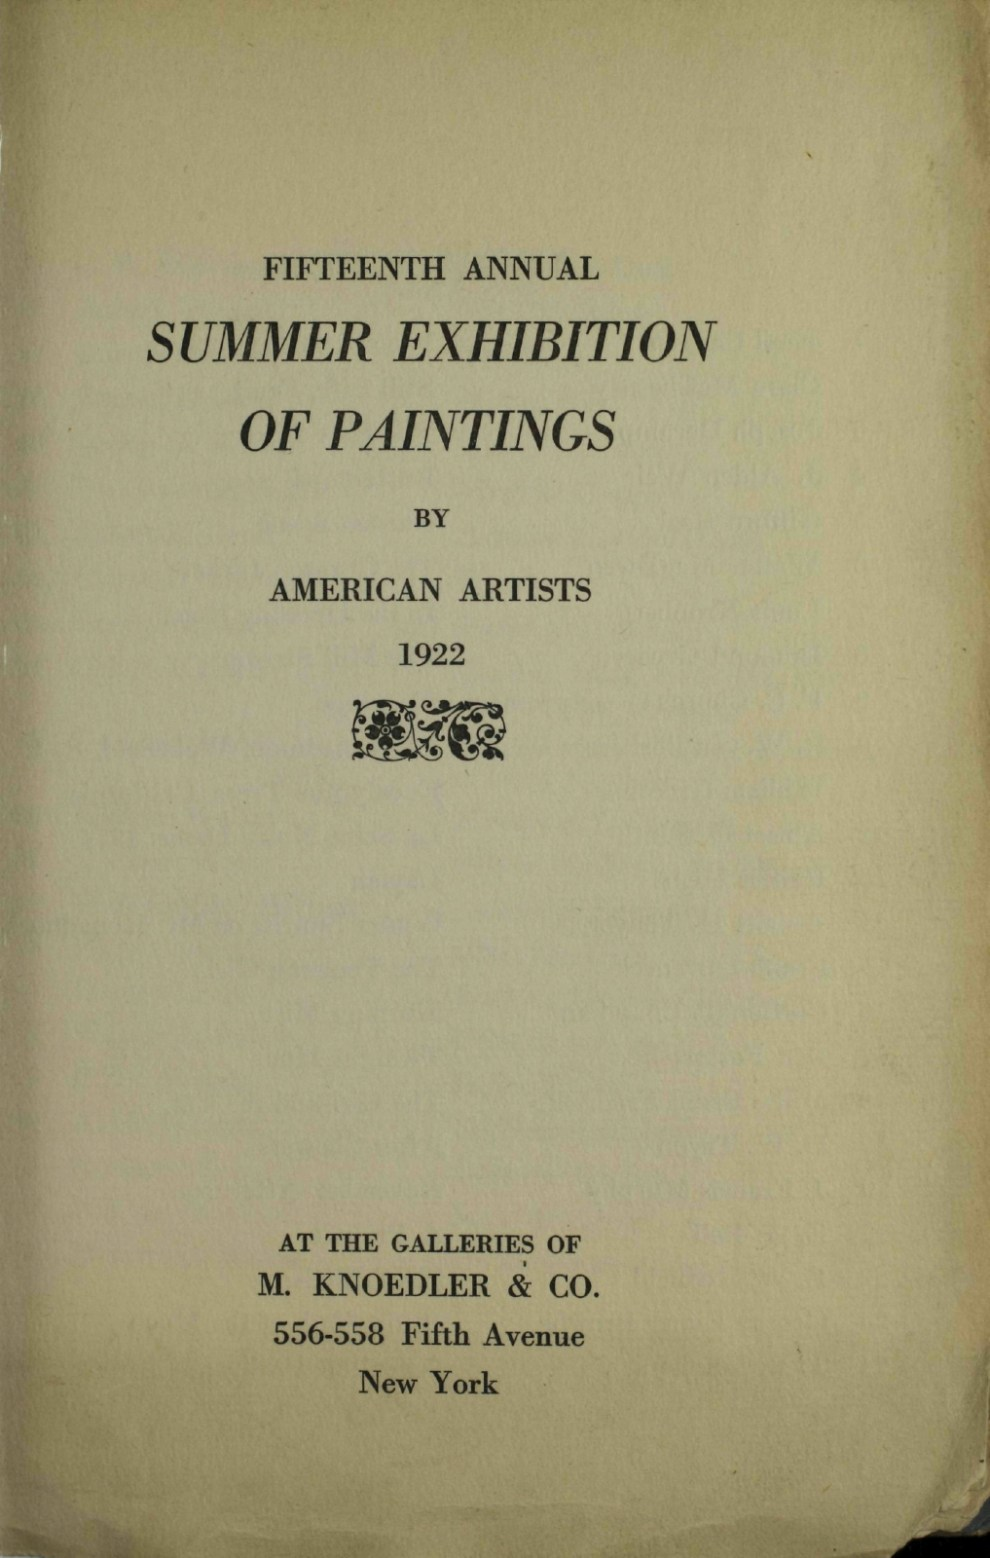 "1922 M. Knoedler & Co., New York, NY, ""Fifteenth Annual Summer Exhibition of Paintings by American Artists"", June-August"